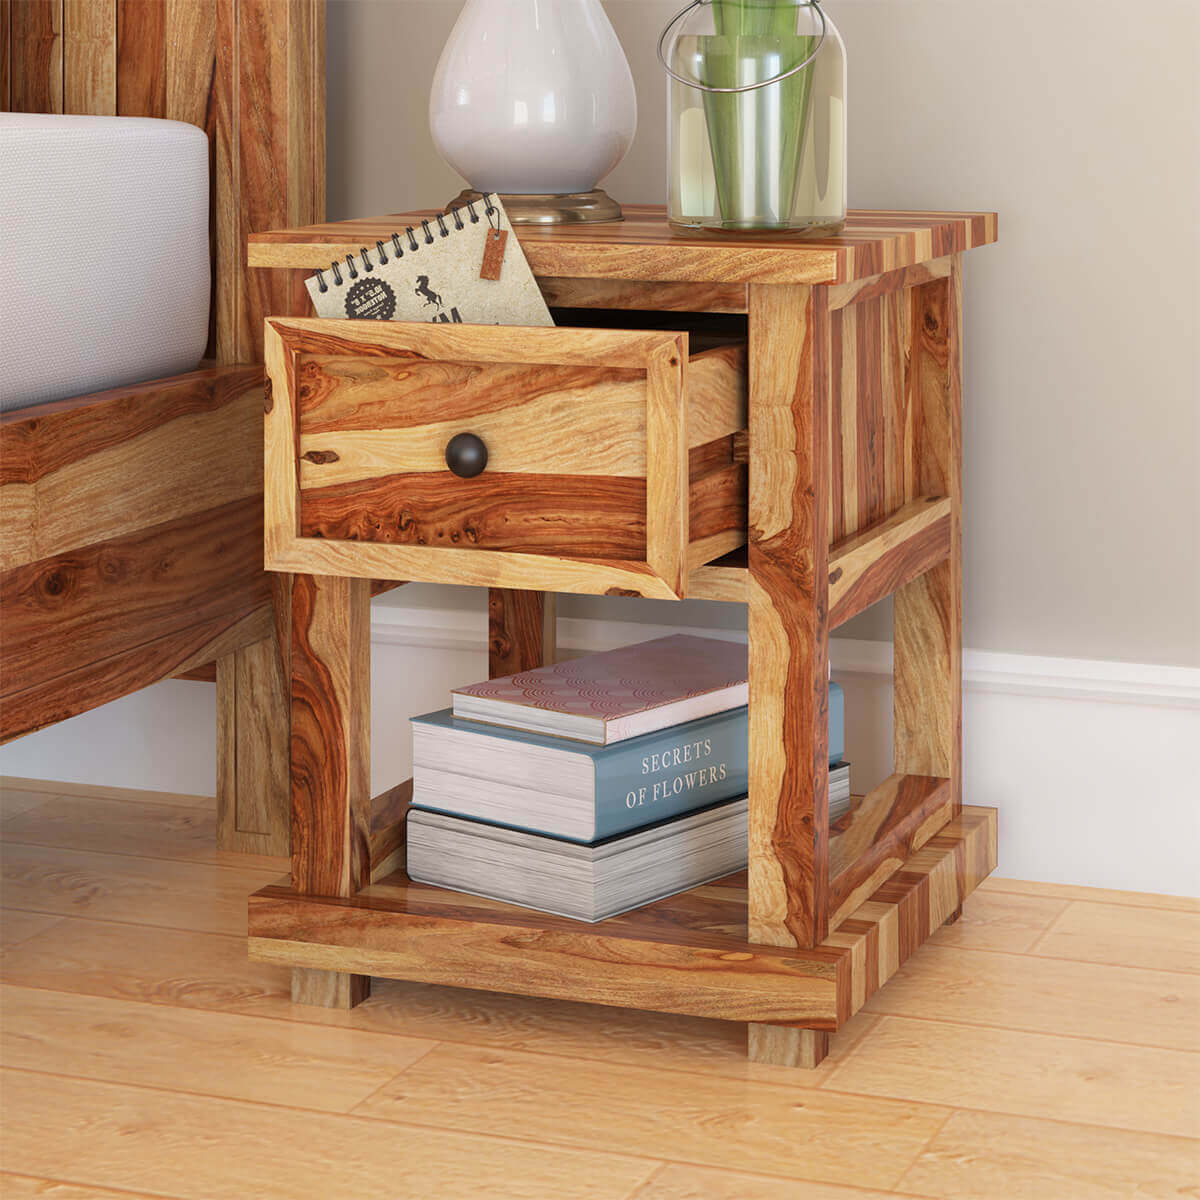 Dallas ranch rustic solid wood nightstand with drawer for Rustic wood nightstand